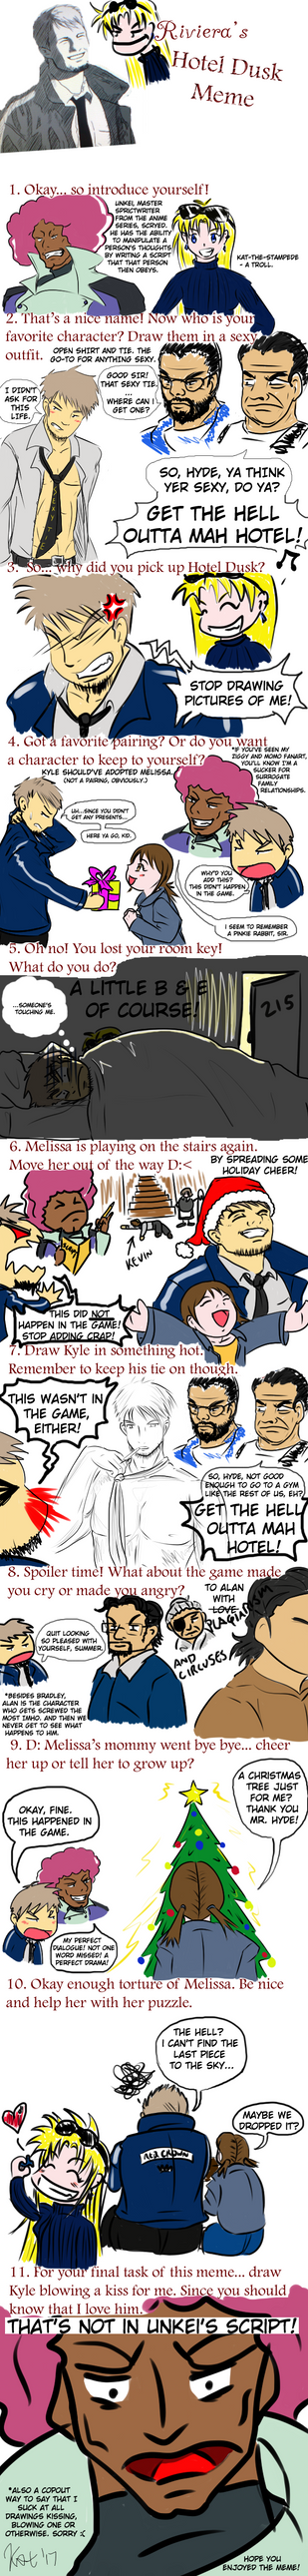 Hotel Dusk: Room 215 Meme by Kat-The-Stampede